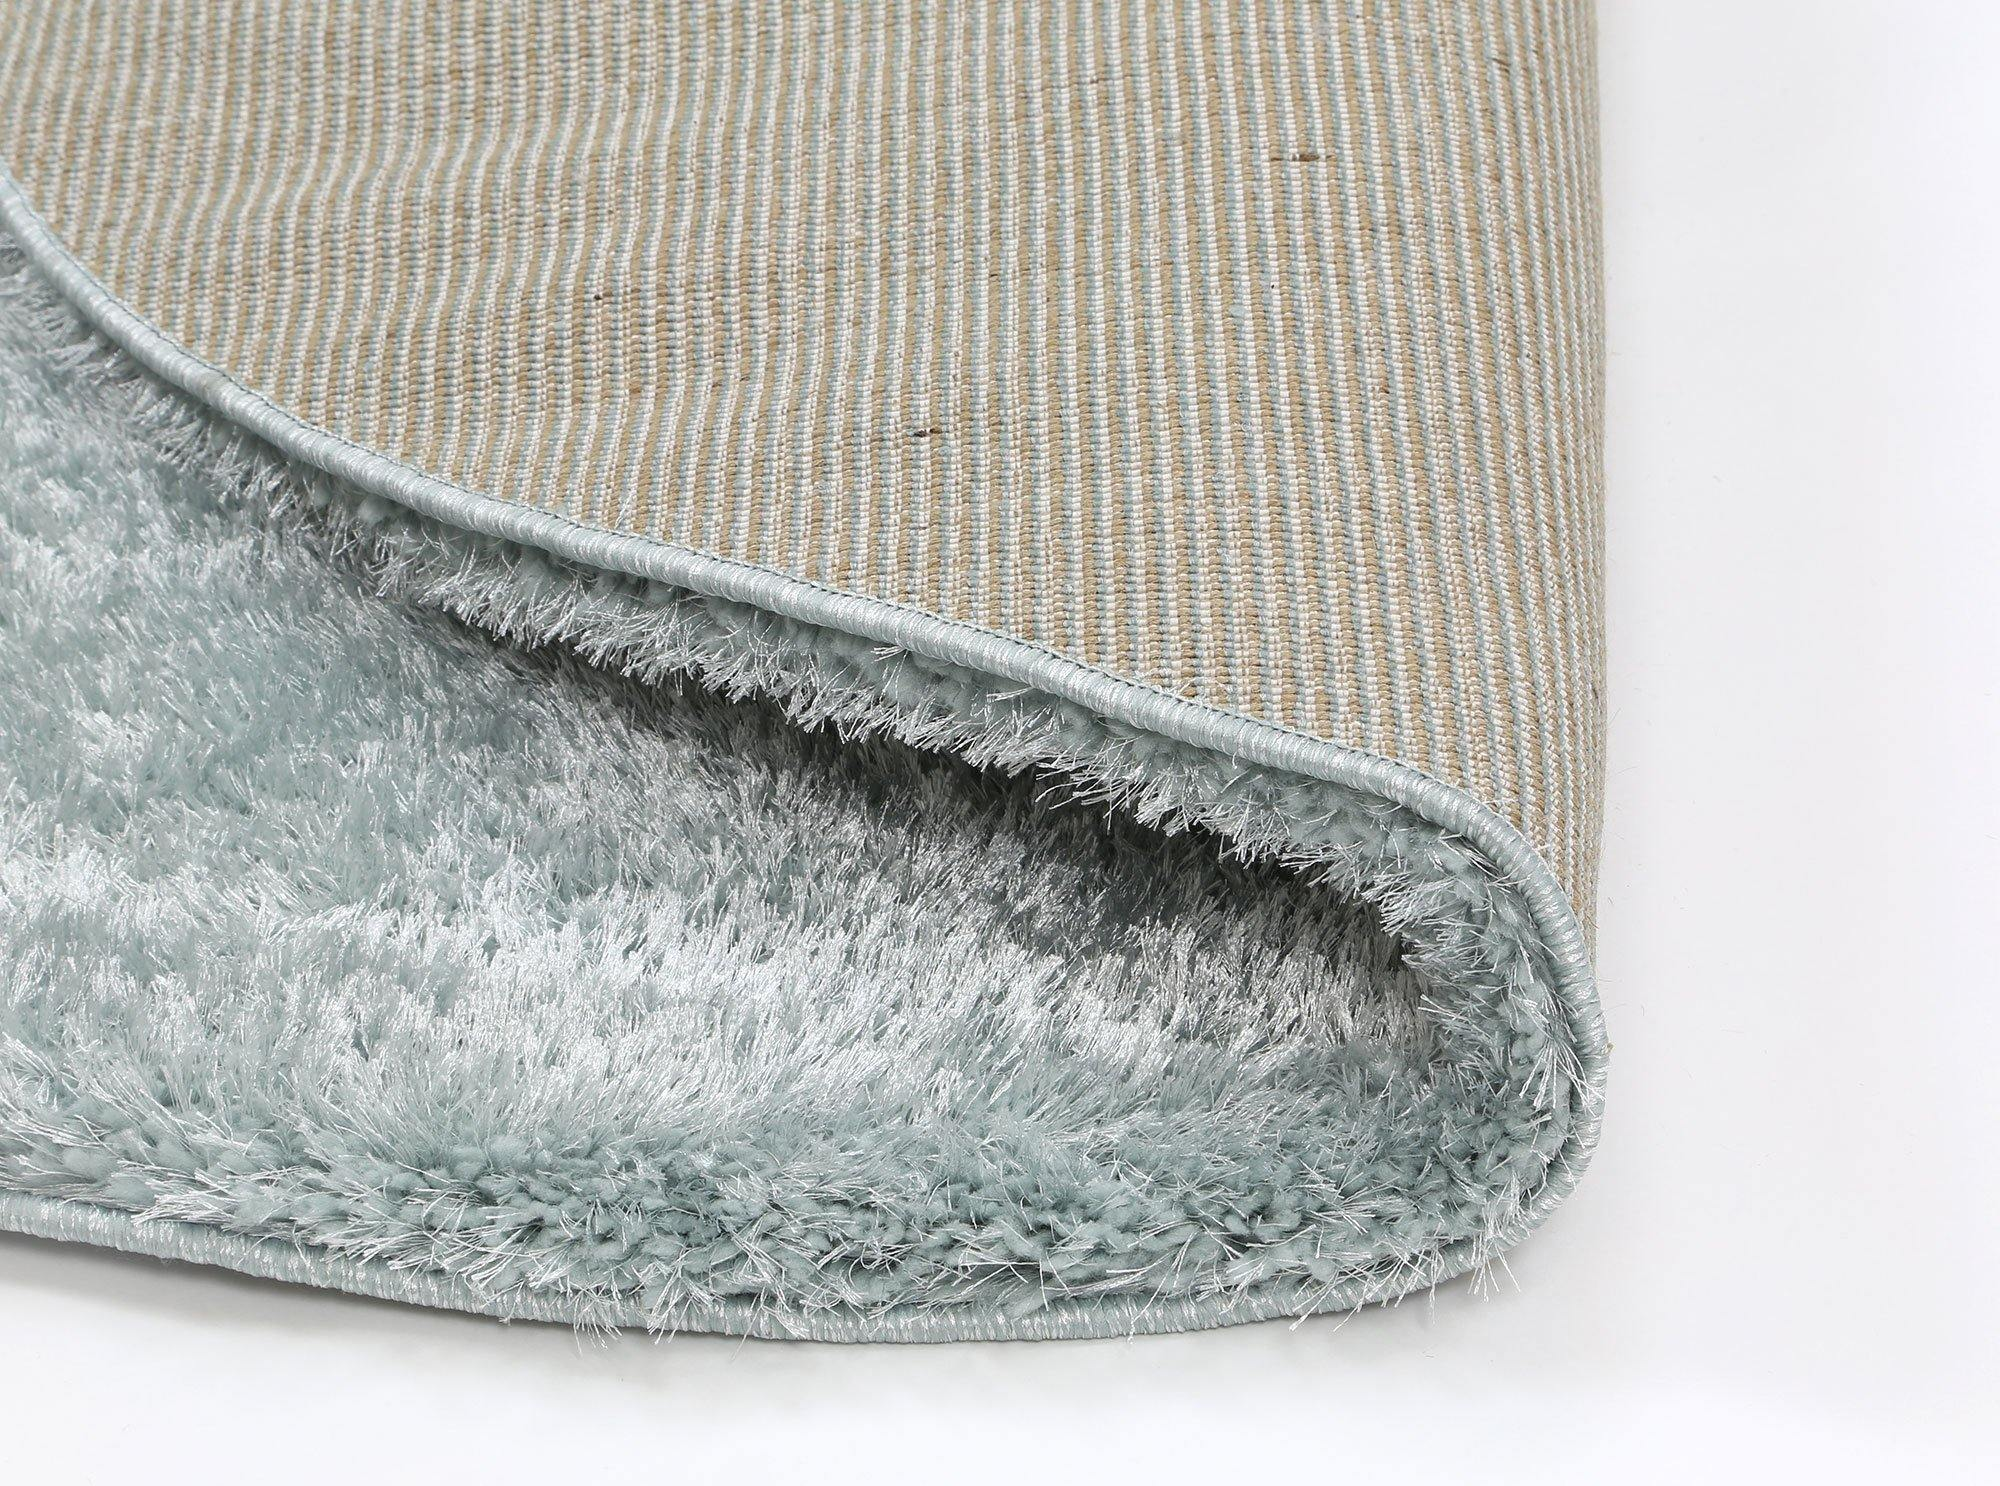 Oasis Soft Shag Teal Rug - The Rugs